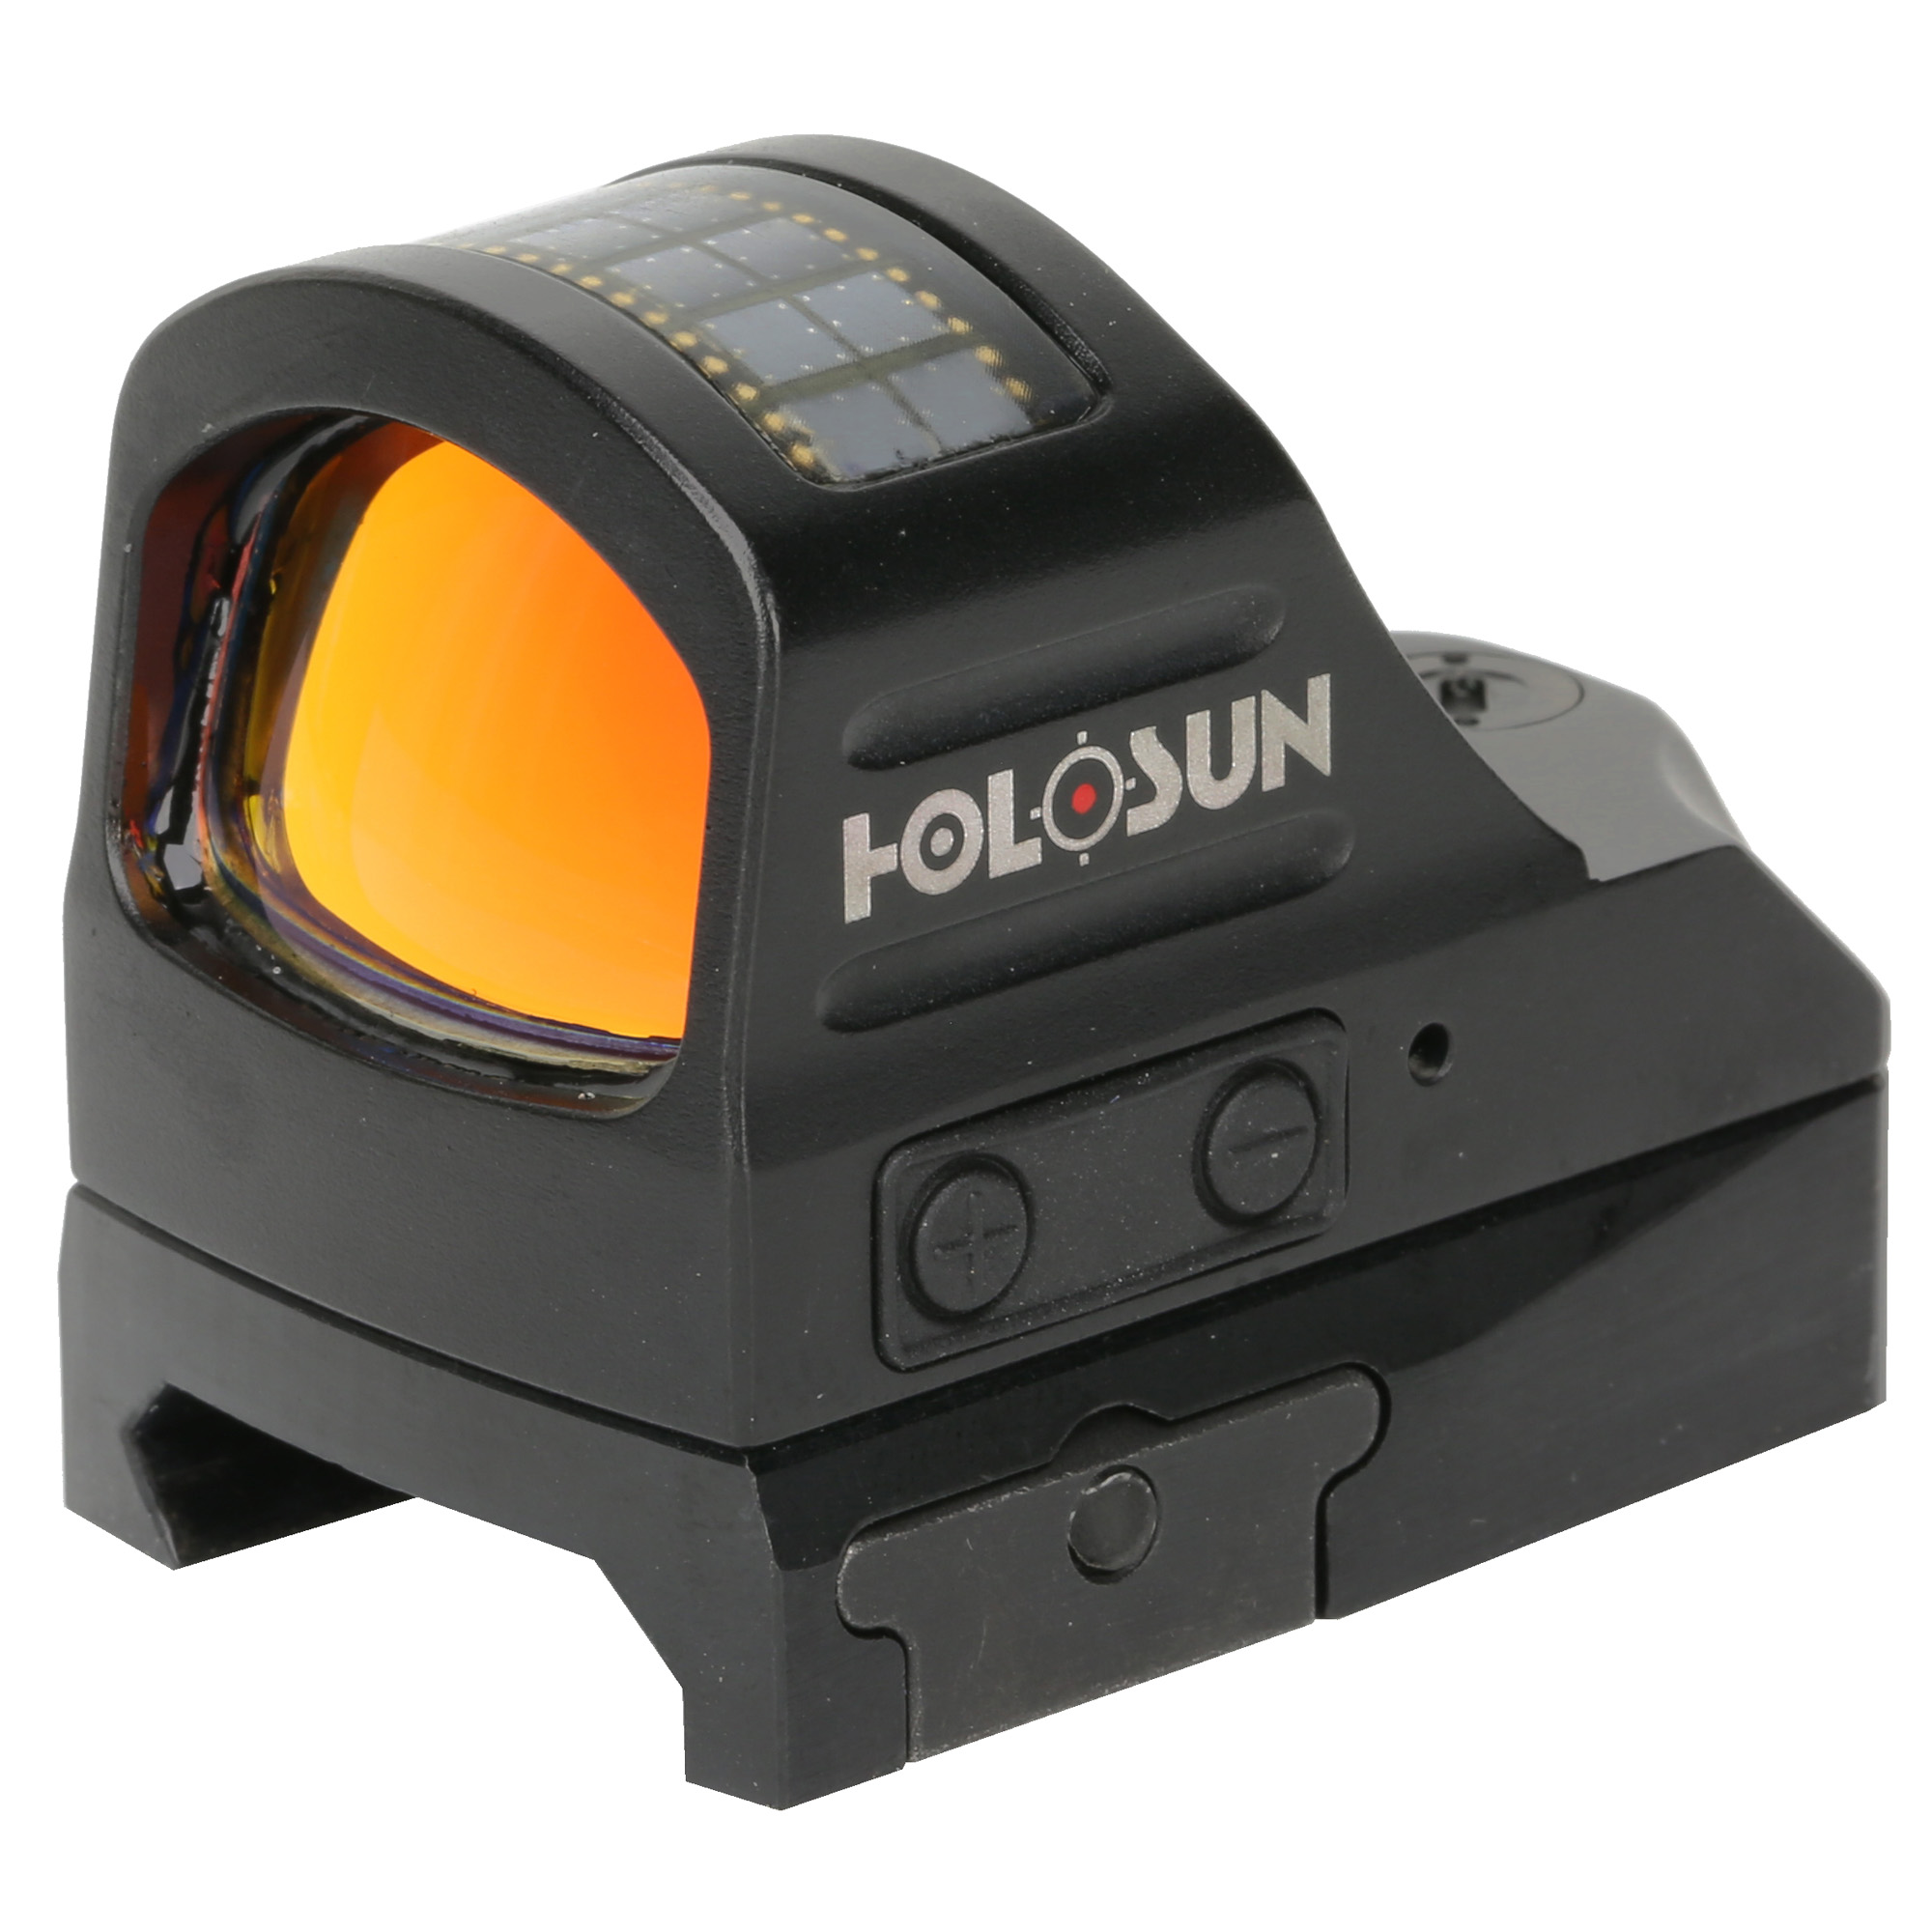 """The new HS507C Micro Red Dot System from Holosun is a pistol-sized optic with an open frame for a great sight picture"""" clear glass and a rugged 7075 aluminum housing. It is powered by a CR2032 battery and Holosun's innovative Solar Fail-safe back up. The HS507C will run up to 10 years on a single battery on setting 6"""" dot only. Featuring Holosun's Multi-reticle system"""" the HS507C allows the operator to switch the reticle between a 32 MOA circle with 2 MOA dot"""" a 2 MOA dot only"""" or a 32 MOA ring only"""" all at the push of a button. Better yet"""" the same LED projects all three reticles"""" so no re-zeroing is necessary. It comes equipped with Holosun's Shake Awake technology with last setting recall. This optic has our features in one tough"""" small package"""